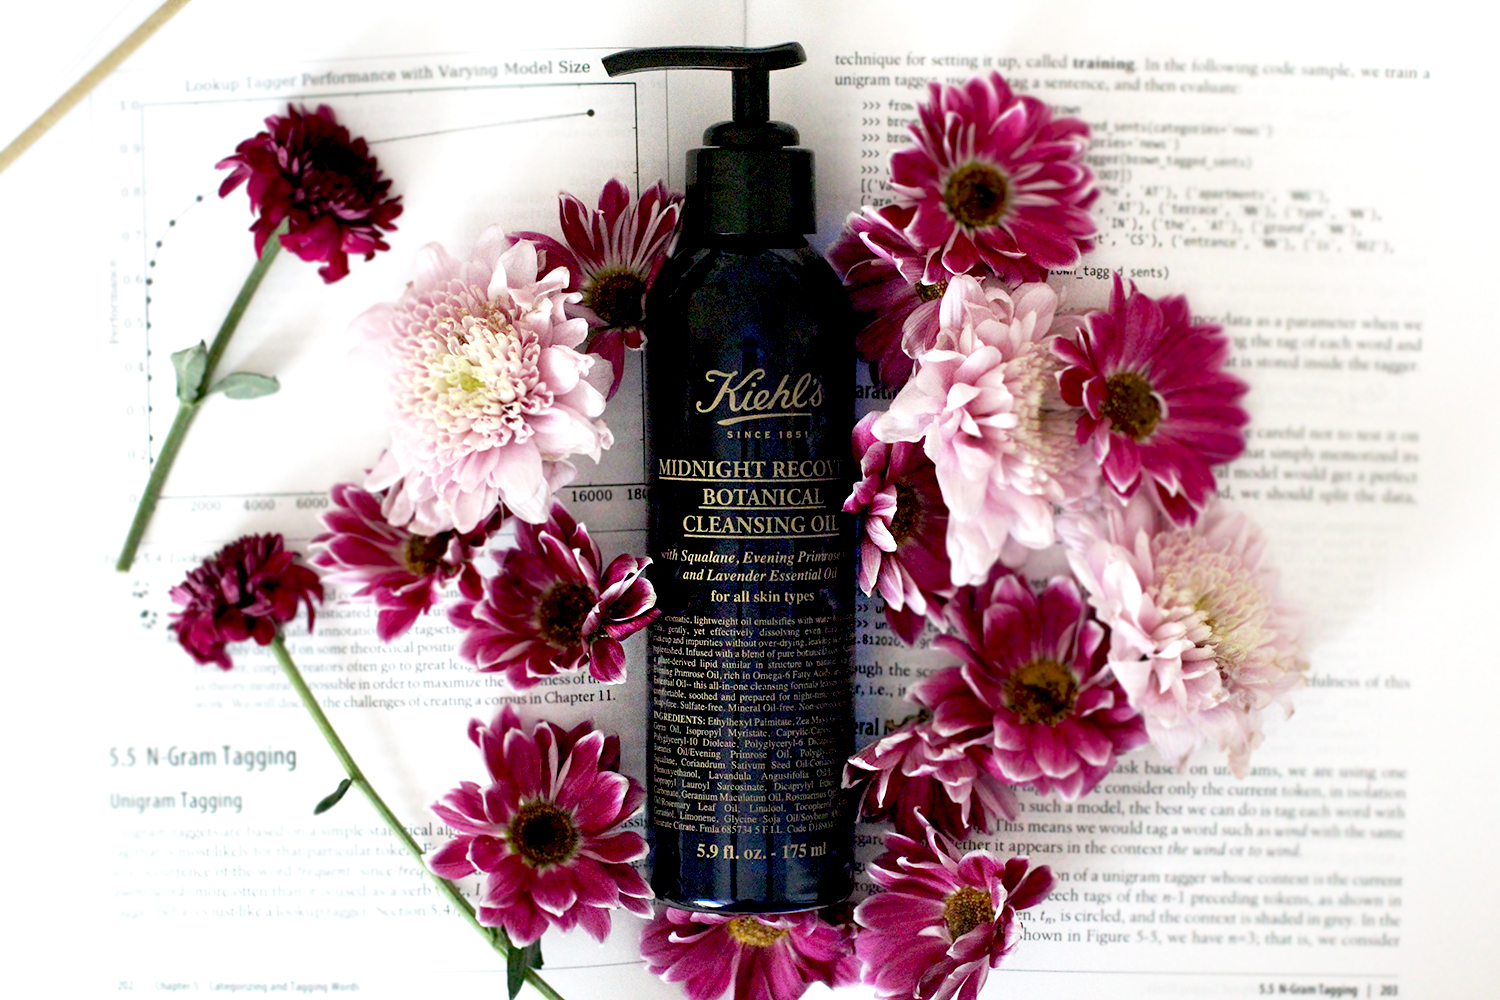 kiehls midnight recovery cleansing oil